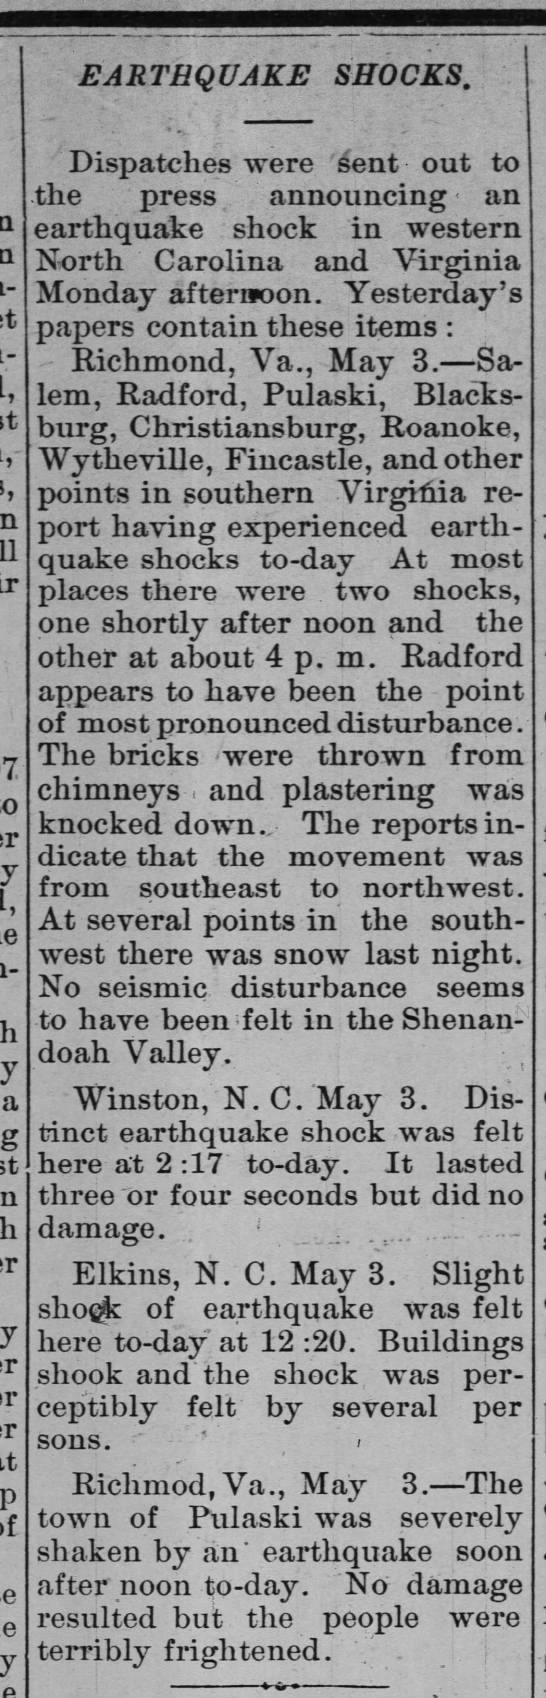 05 May 1897 County Union (Dunn, NC), p.2. -